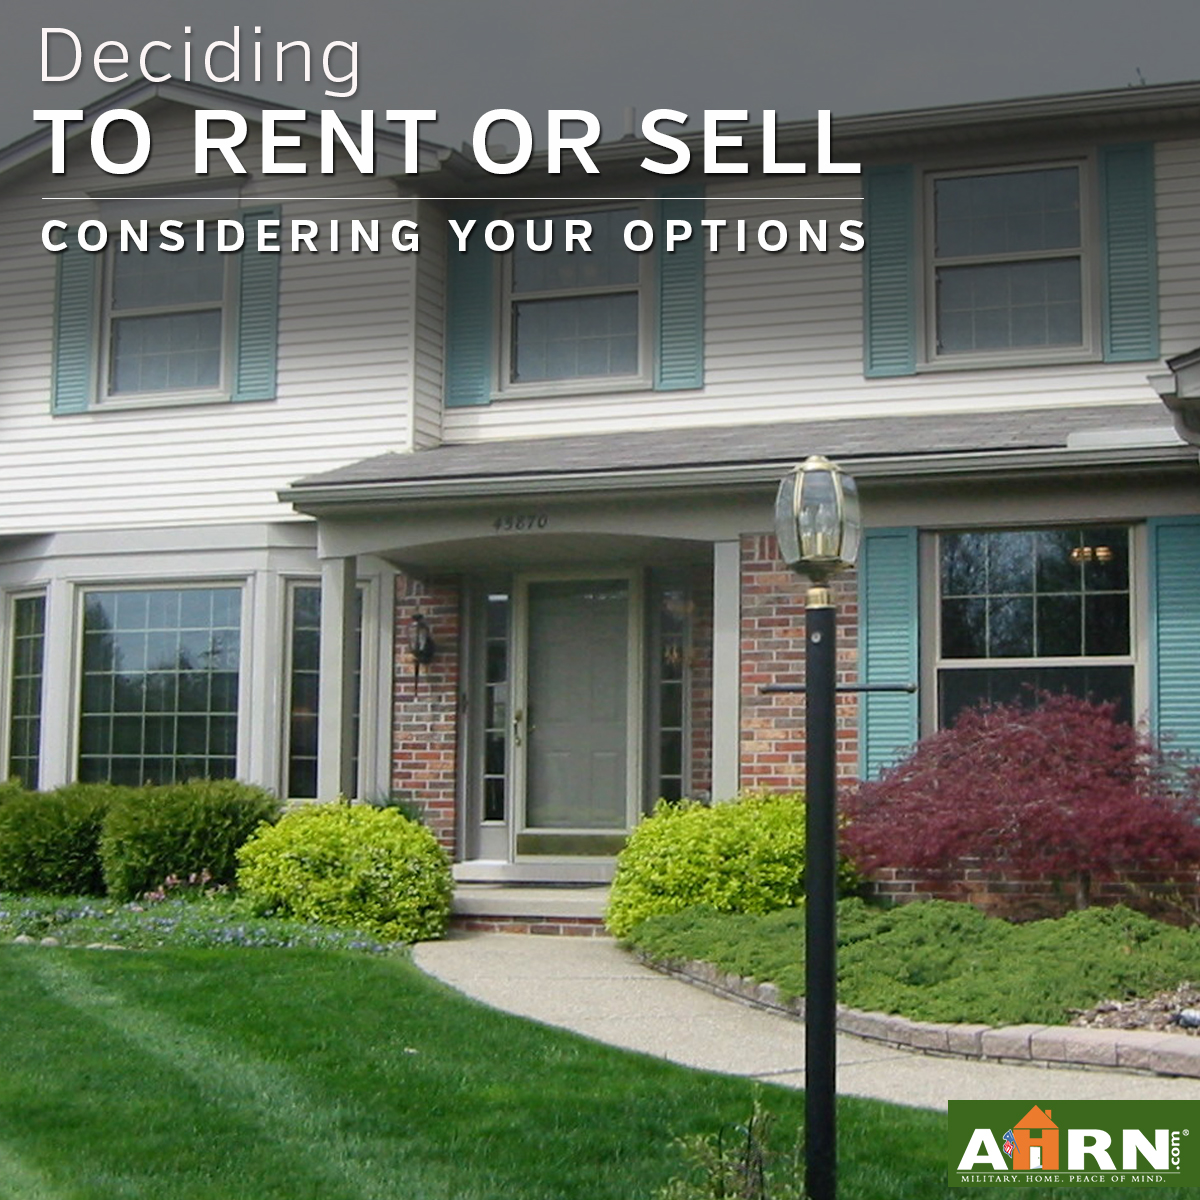 how to decide to rent or sell your home